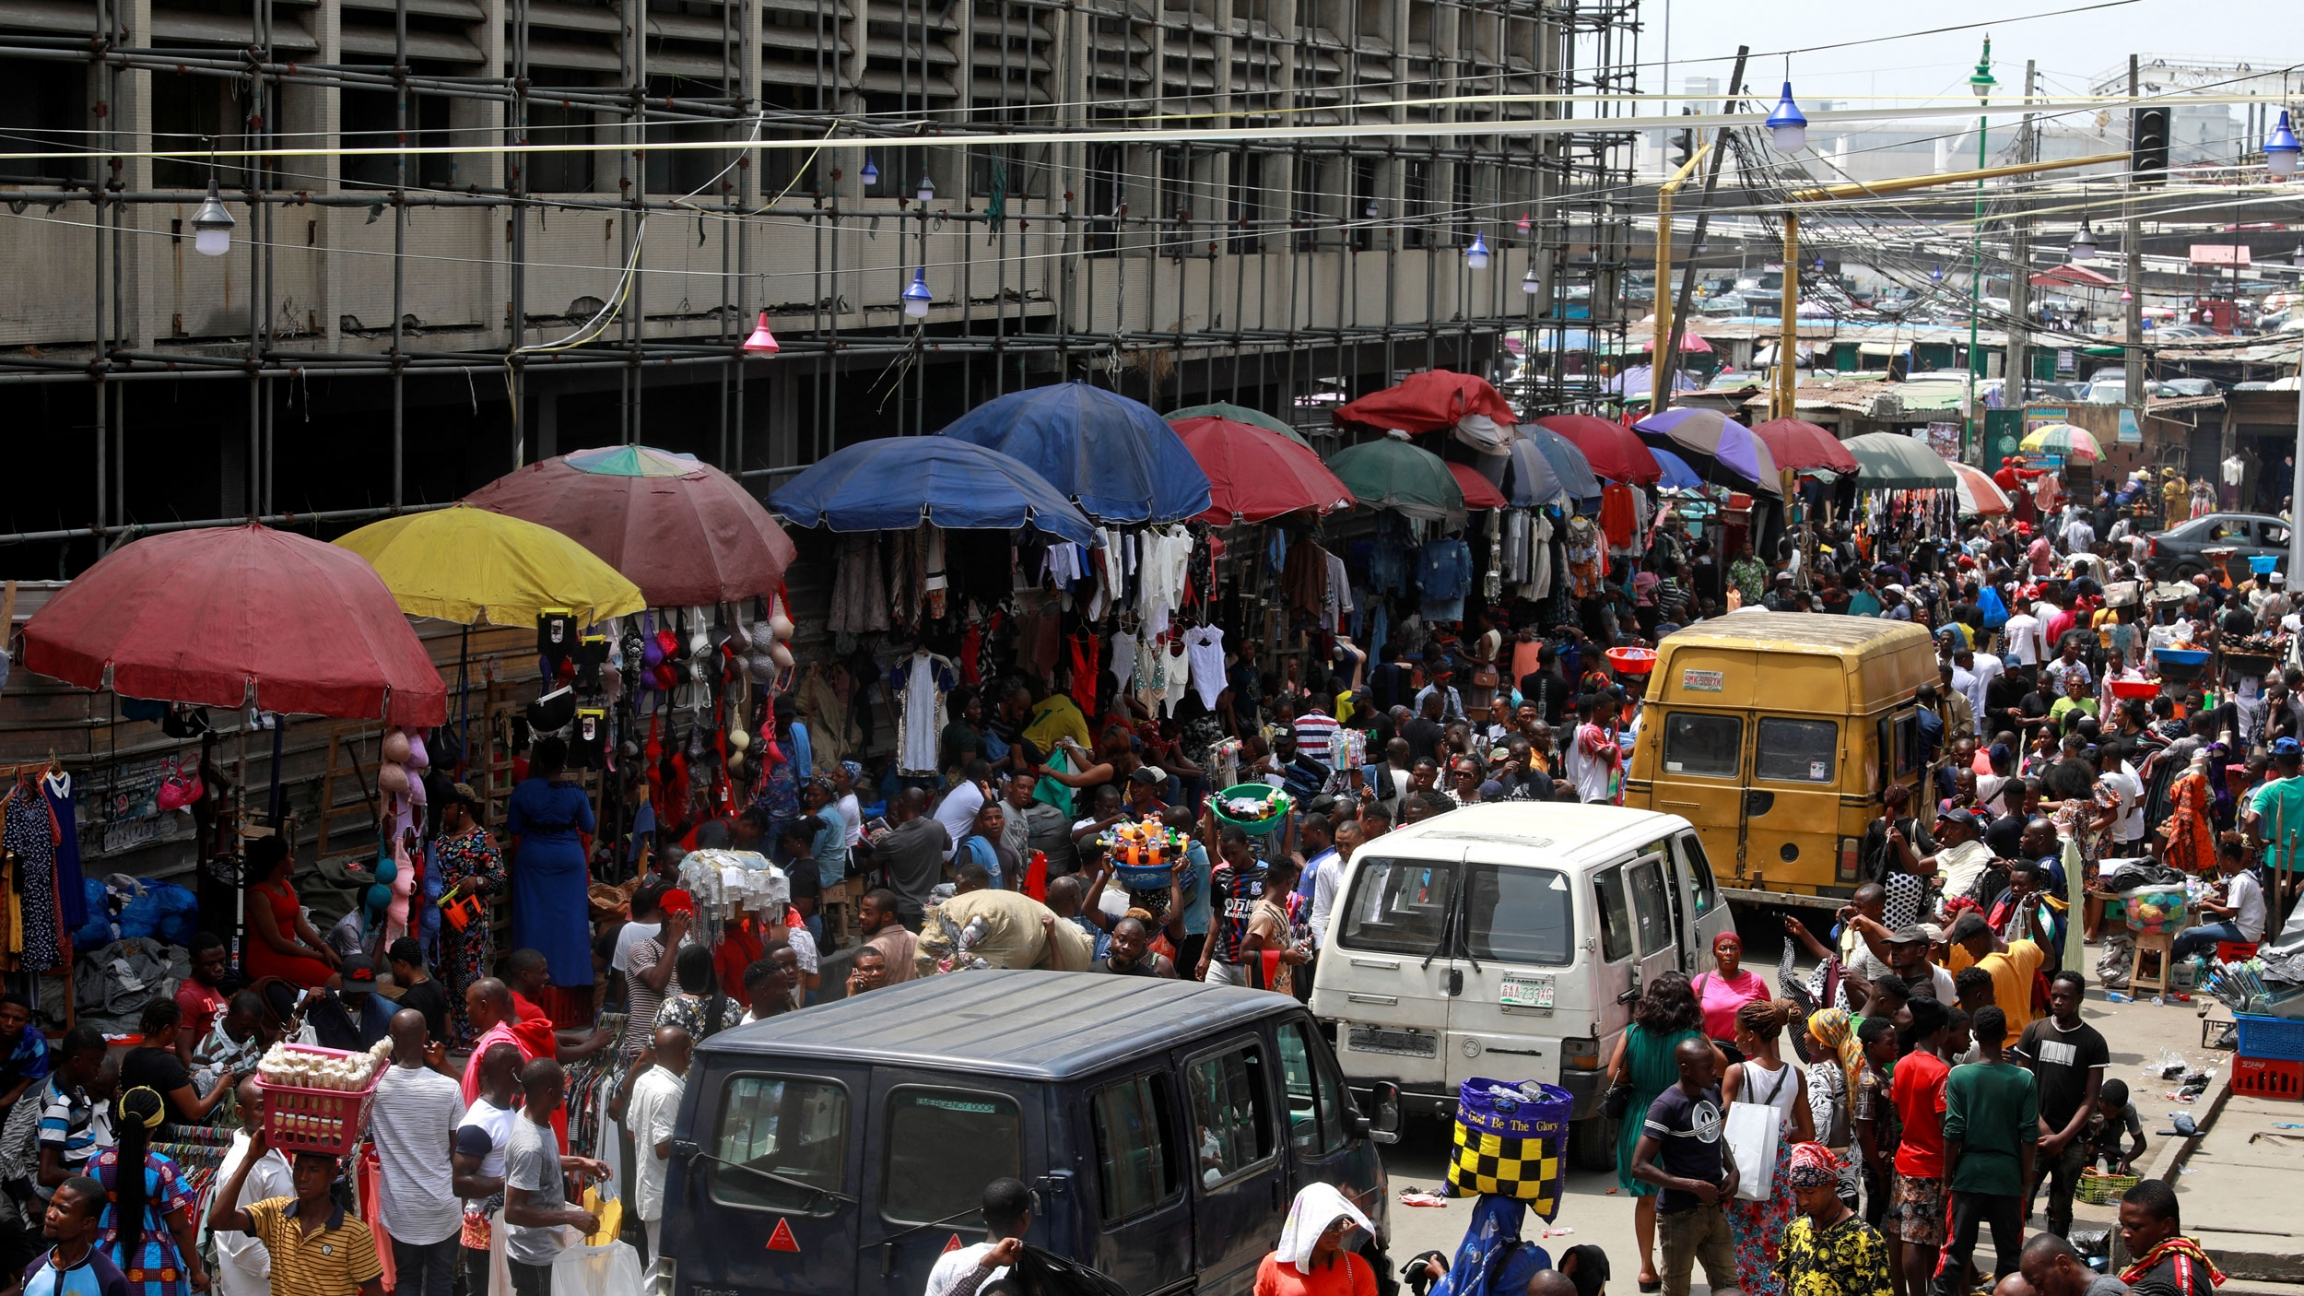 A bustling market is shown with hundreds of peope packed into the street lined with large vendor umbrellas.